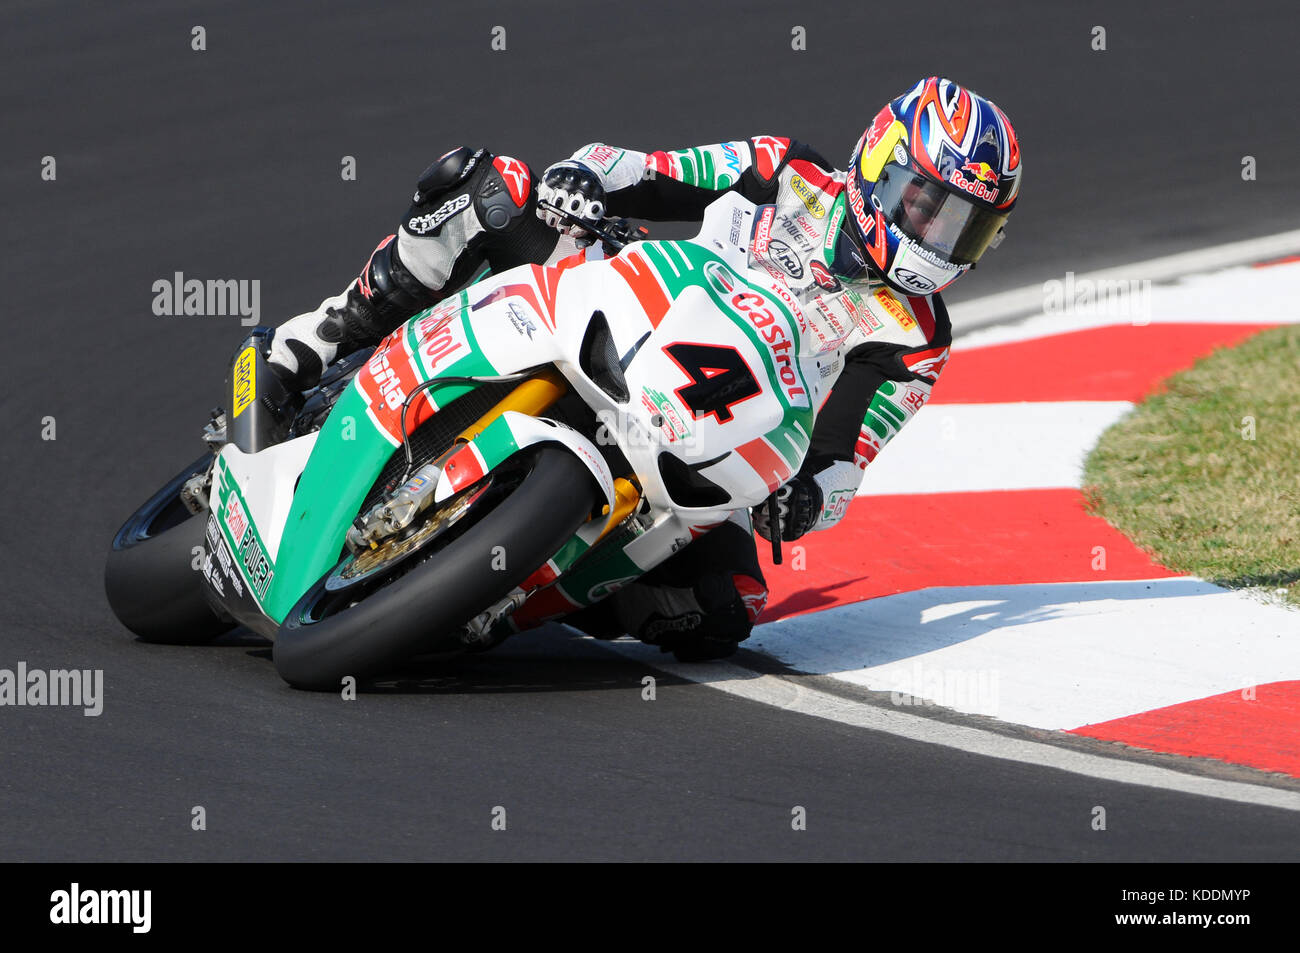 San Marino, Italy - Sep 24, 2011: Jonathan Rea GBR (Honda CBR1000RR) Castrol Honda in action during the Superbike Stock Photo